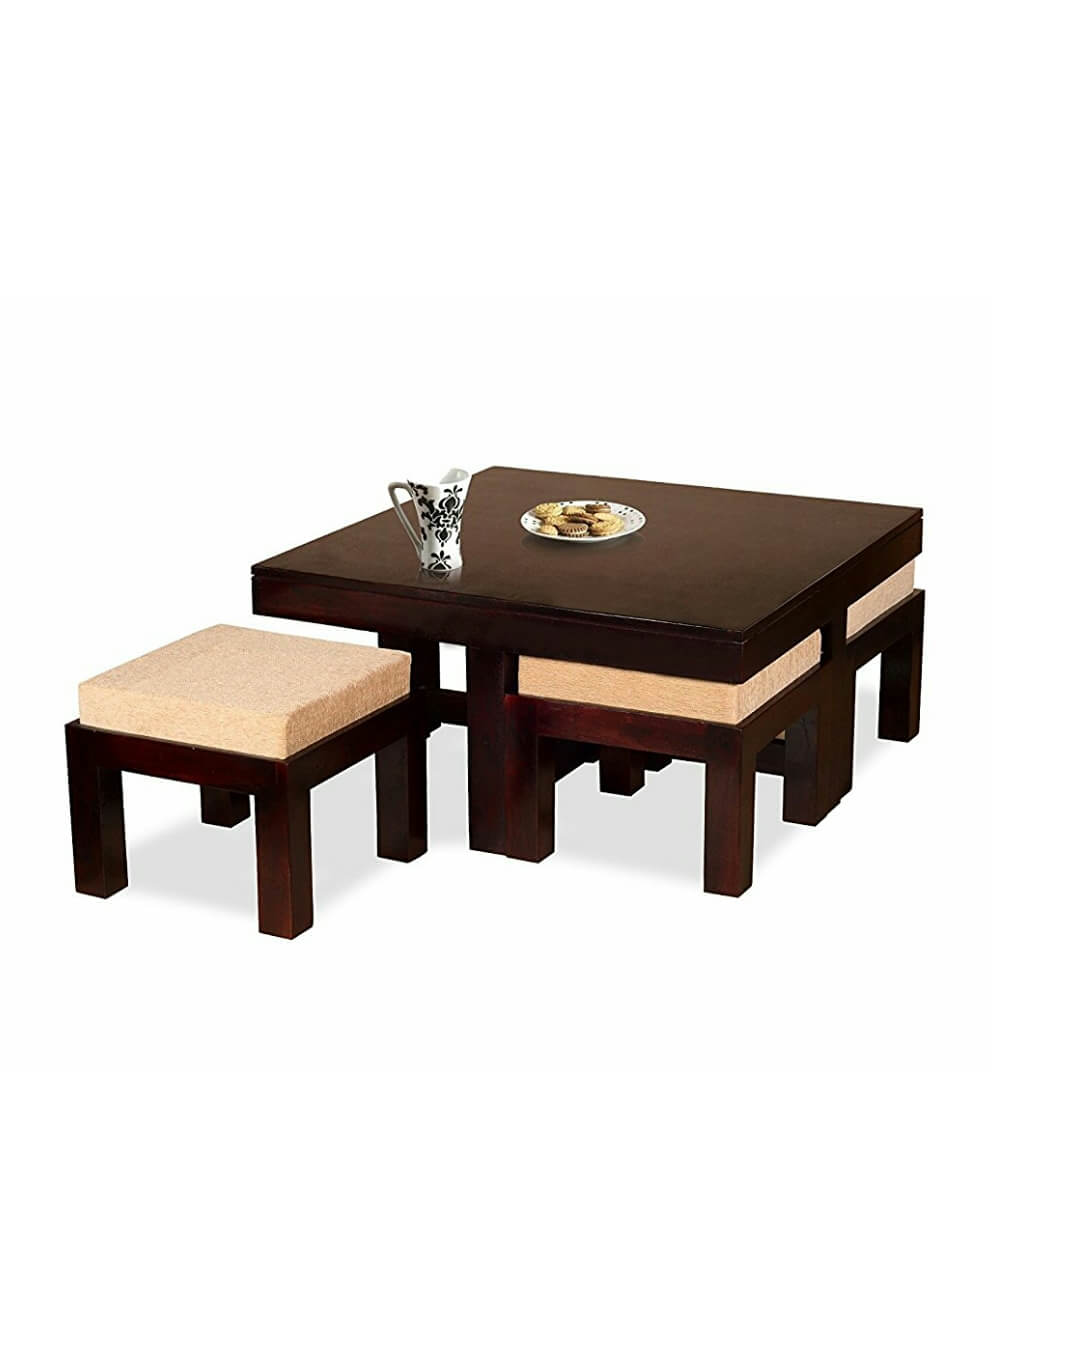 Wooden Coffee Table With 4 Stools For Living Room Rajtaishree